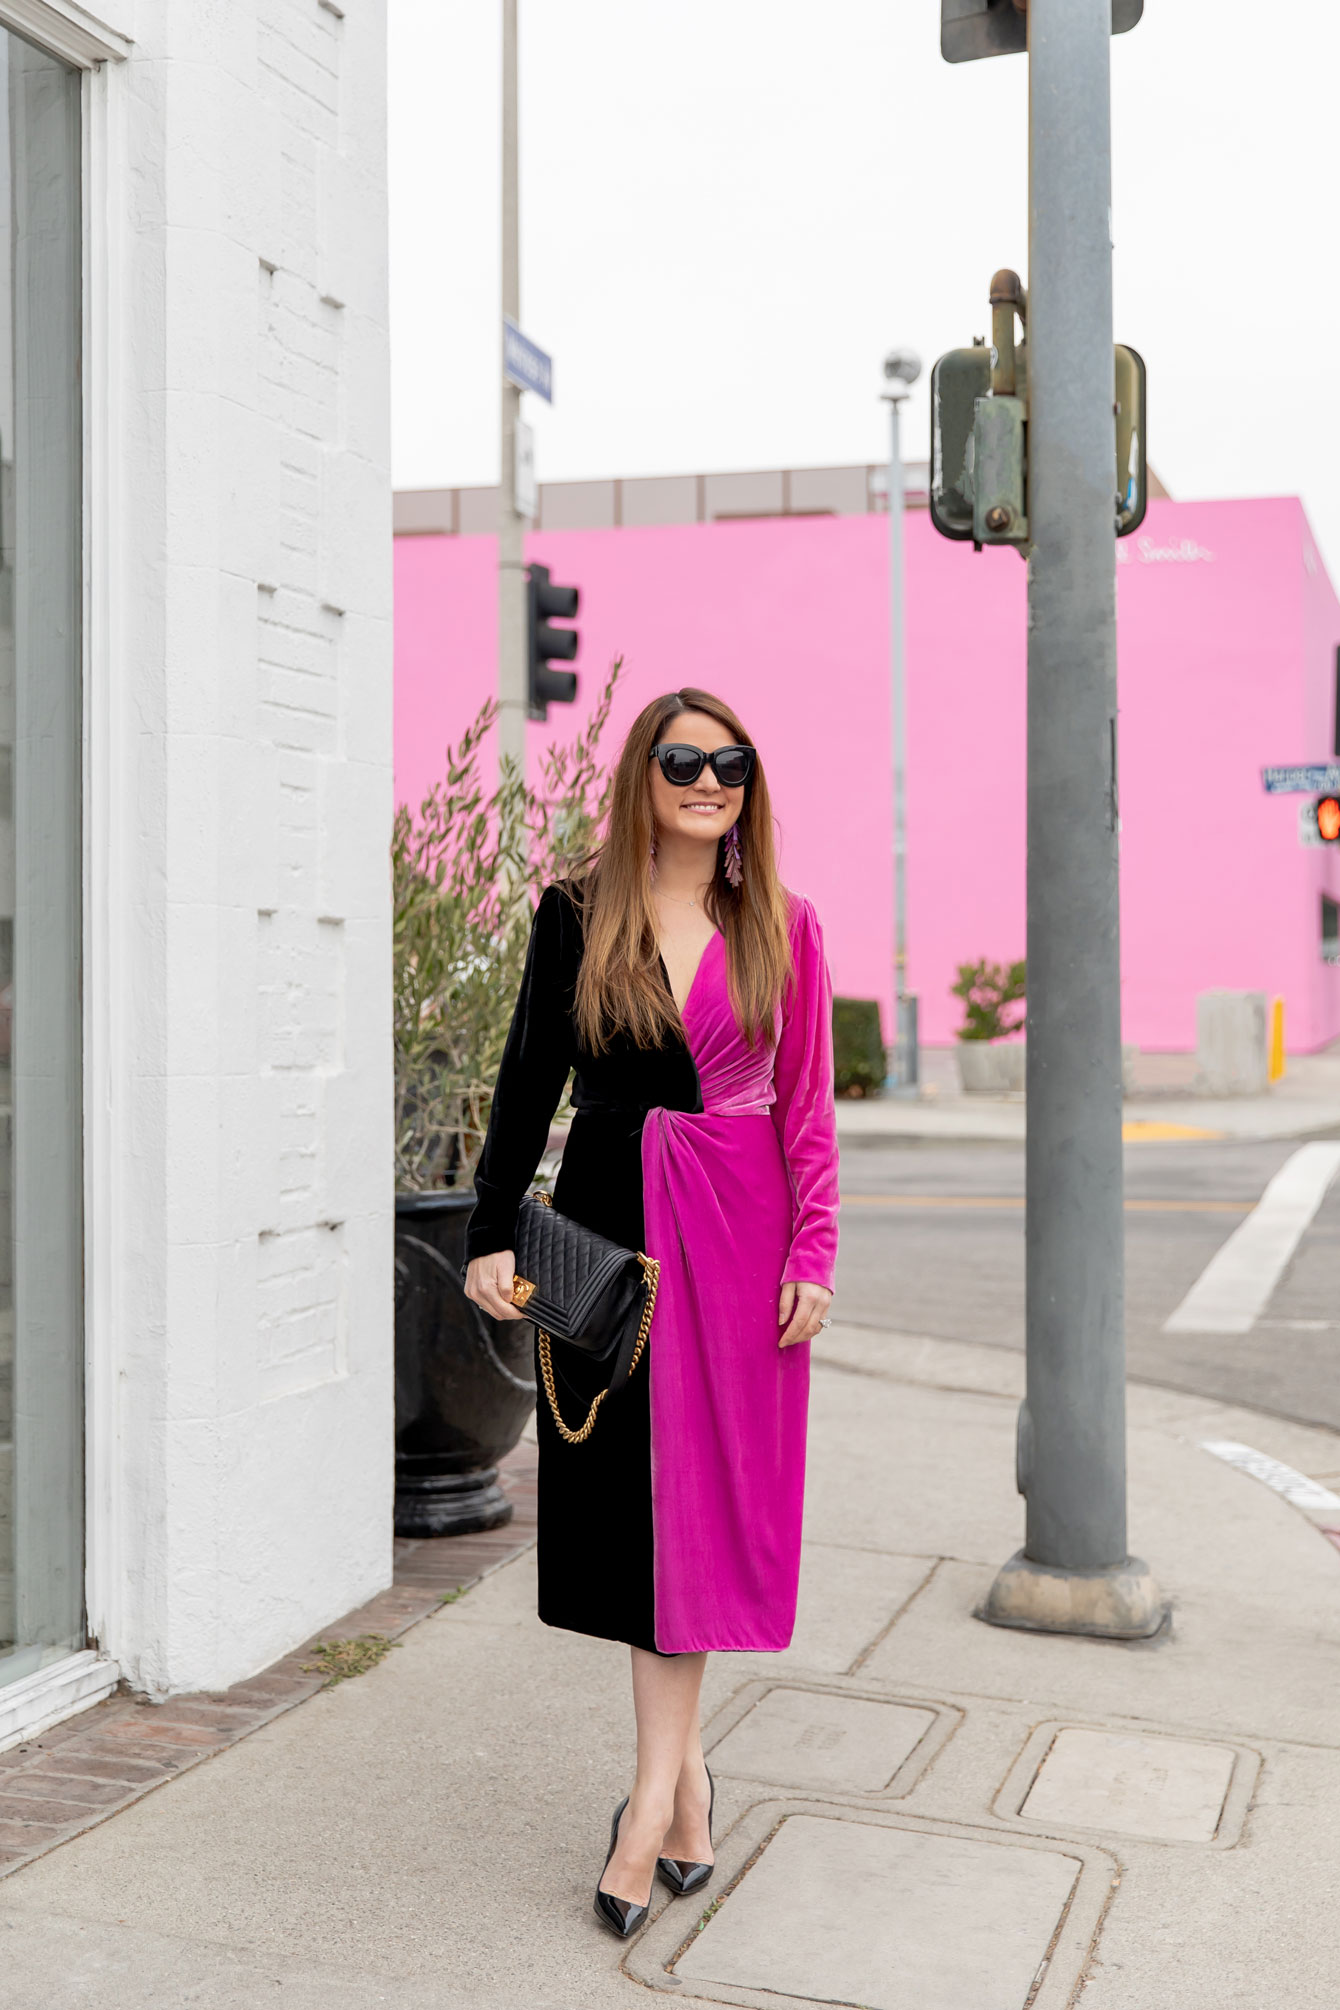 Jennifer Lake Pink Wall Los Angeles